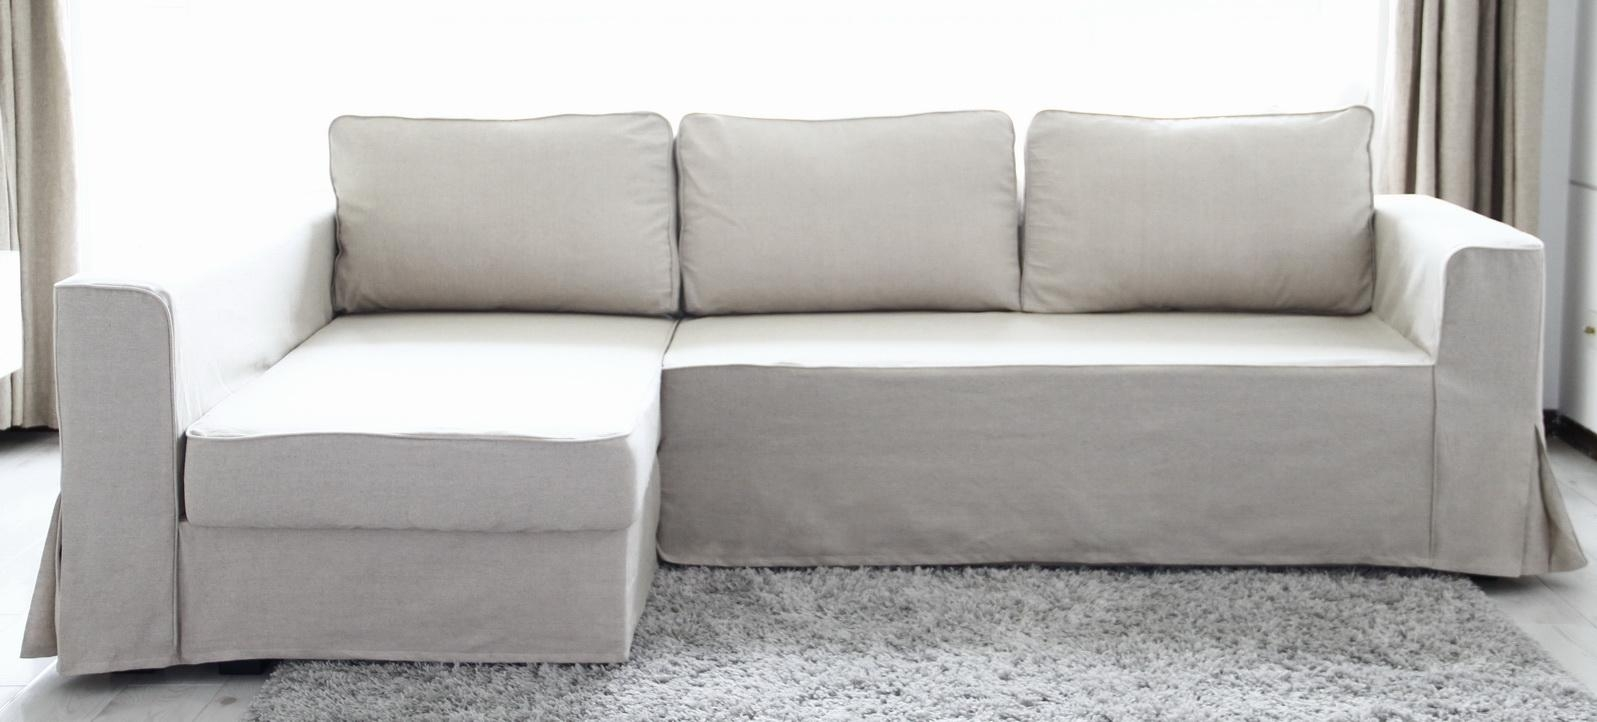 Loose Fit Linen Manstad Sofa Slipcovers Now Available For Ikea Chaise Lounge Sofa (View 20 of 20)